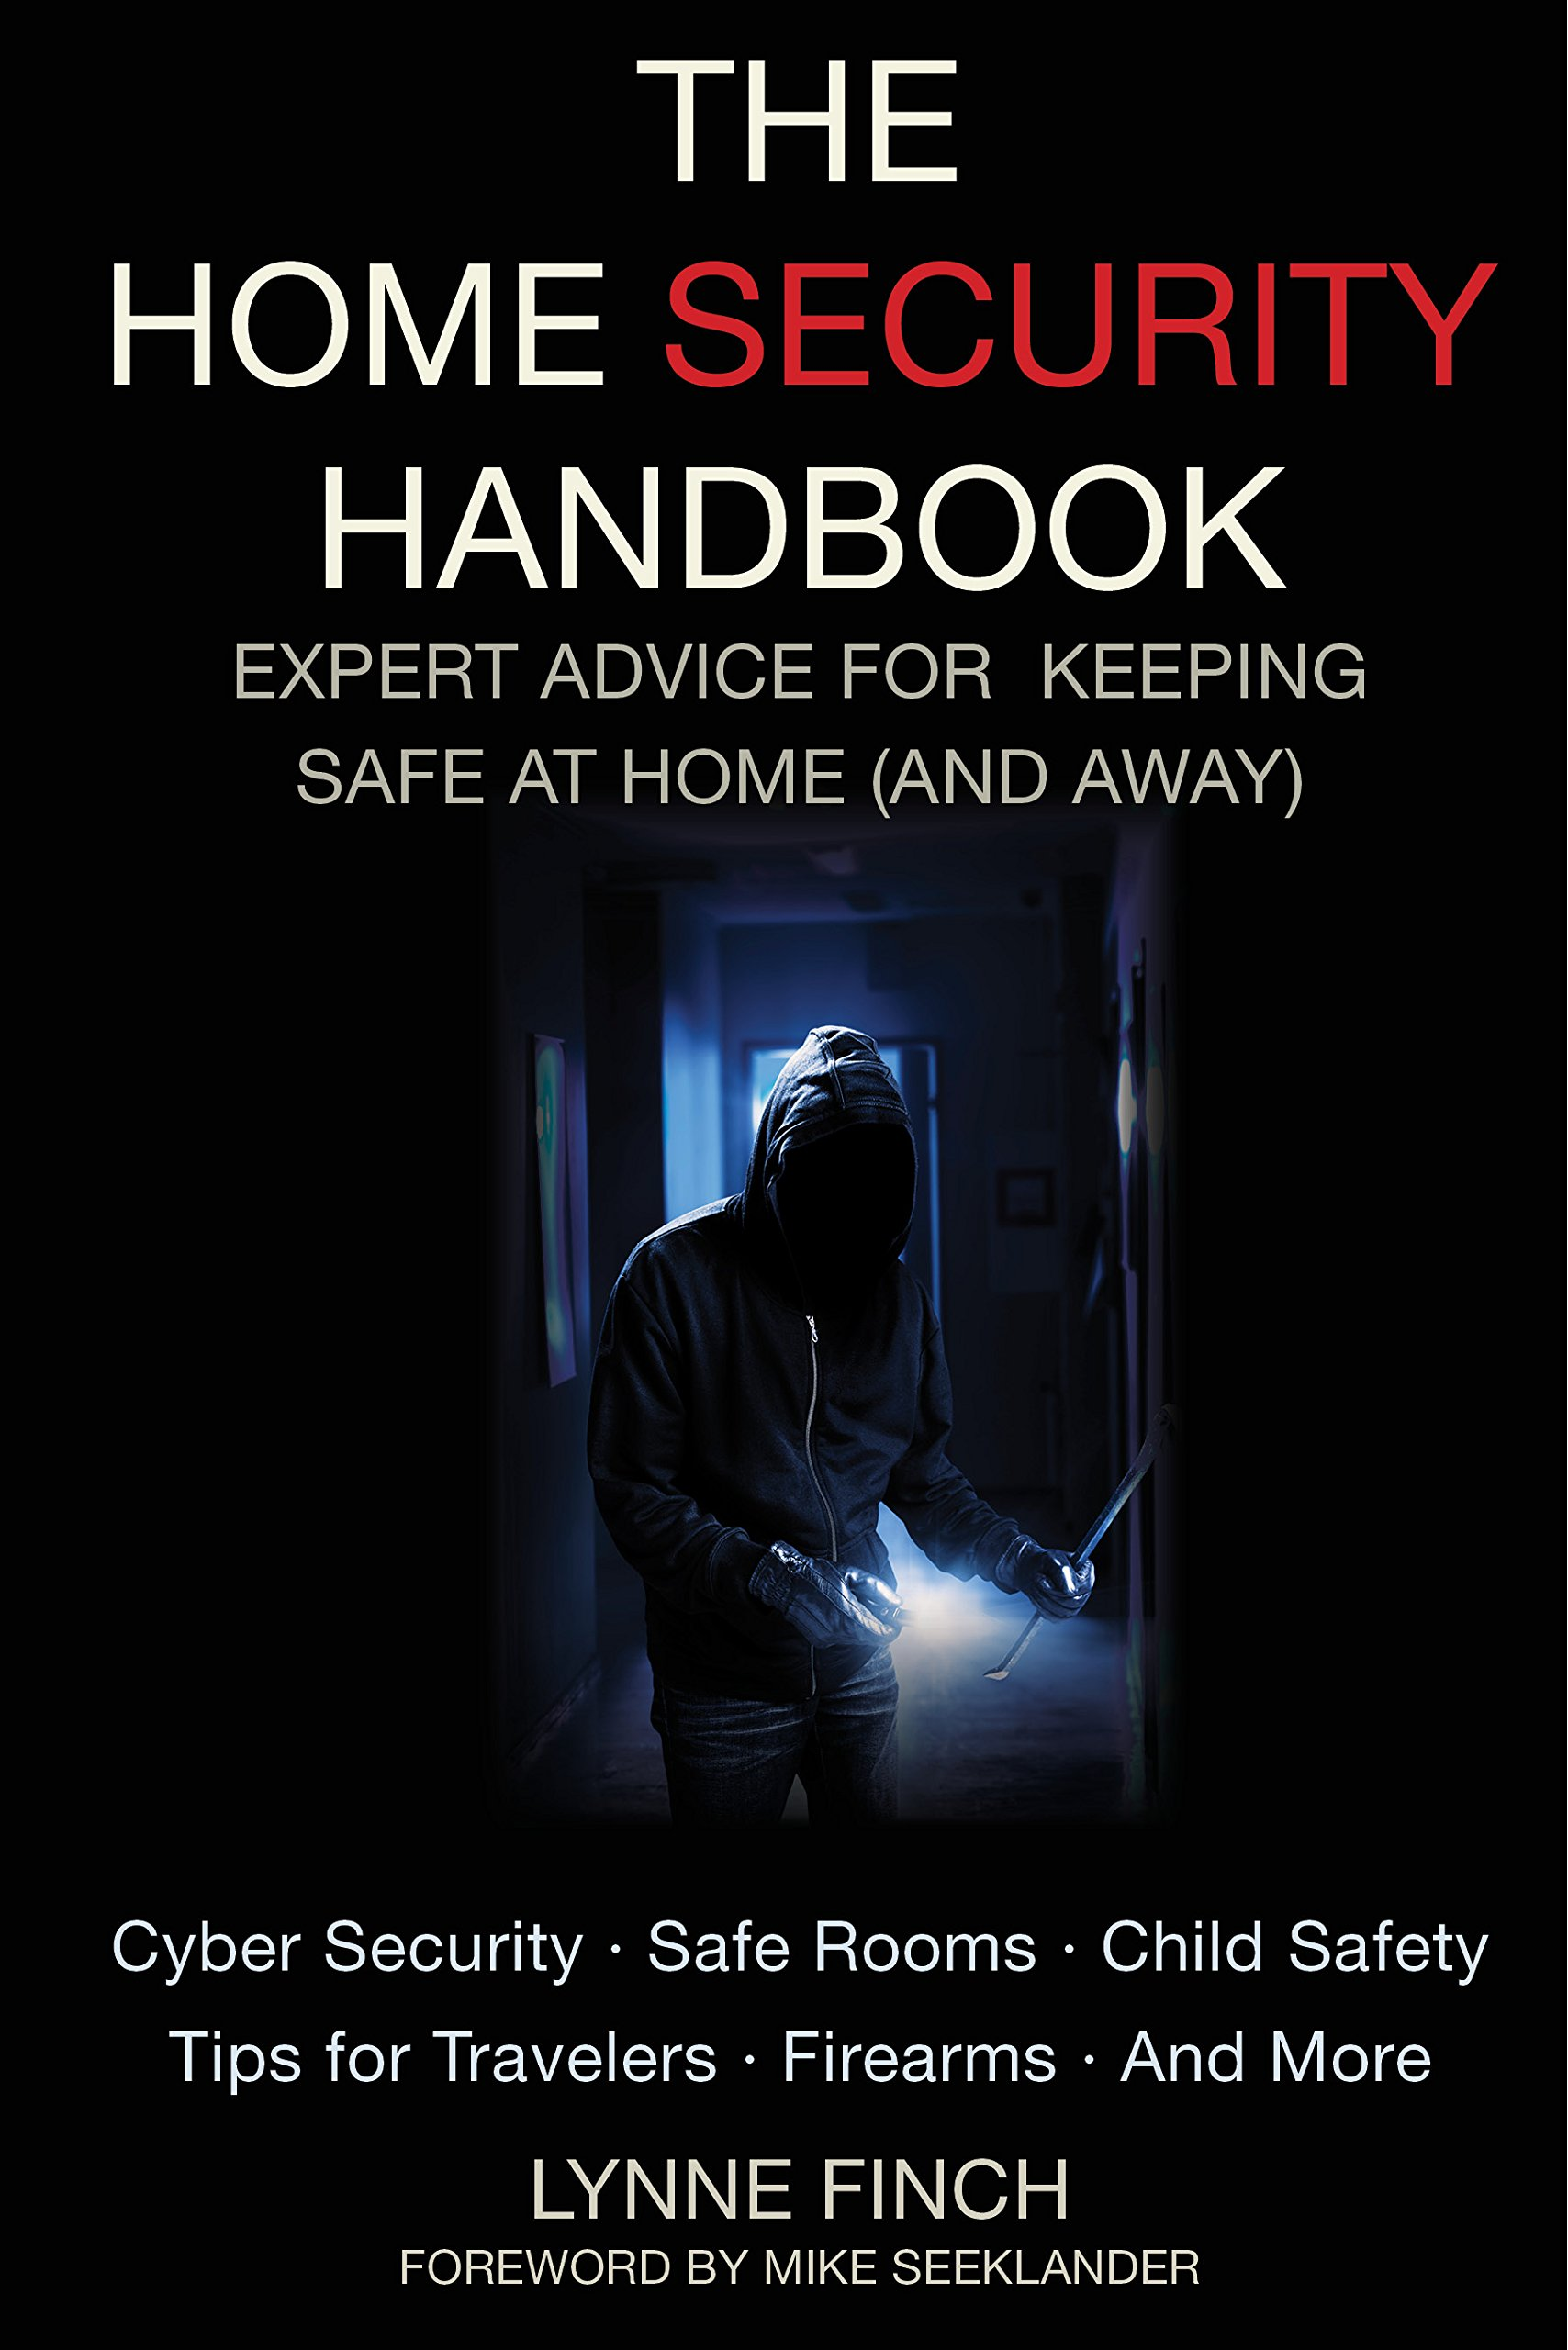 The Home Security Handbook: Expert Advice for Keeping Safe at Home (And Away)